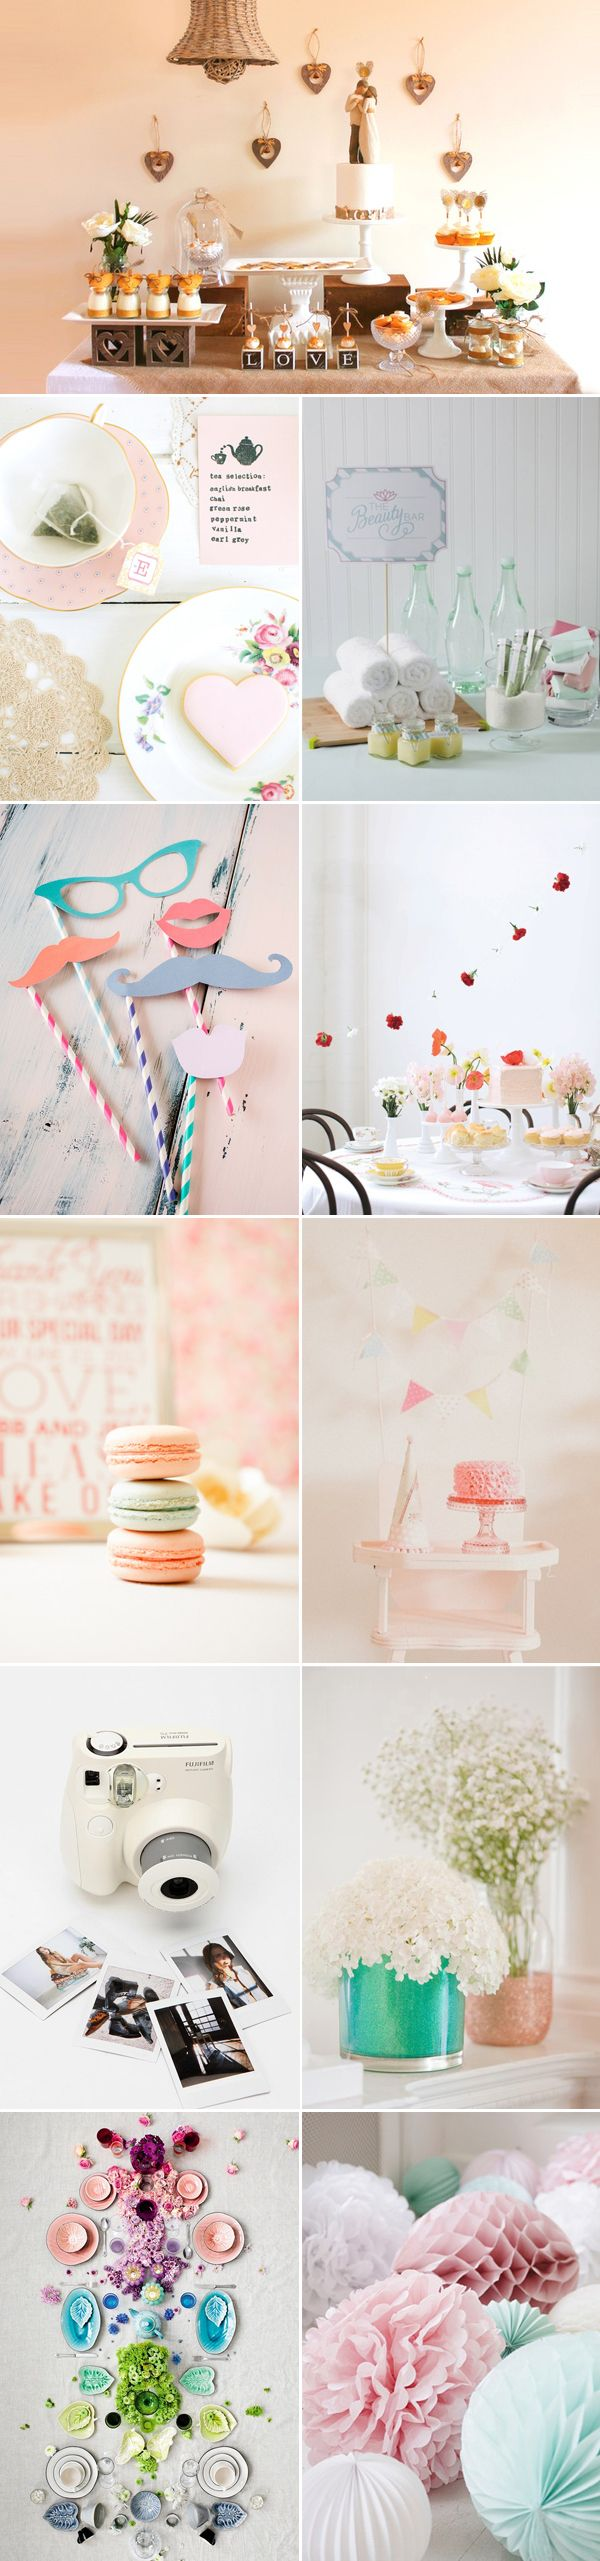 Kayla, look through these pics. There are all kinds of different ways to do hanging decor and streamers. And examples of mismatching prints and styles.